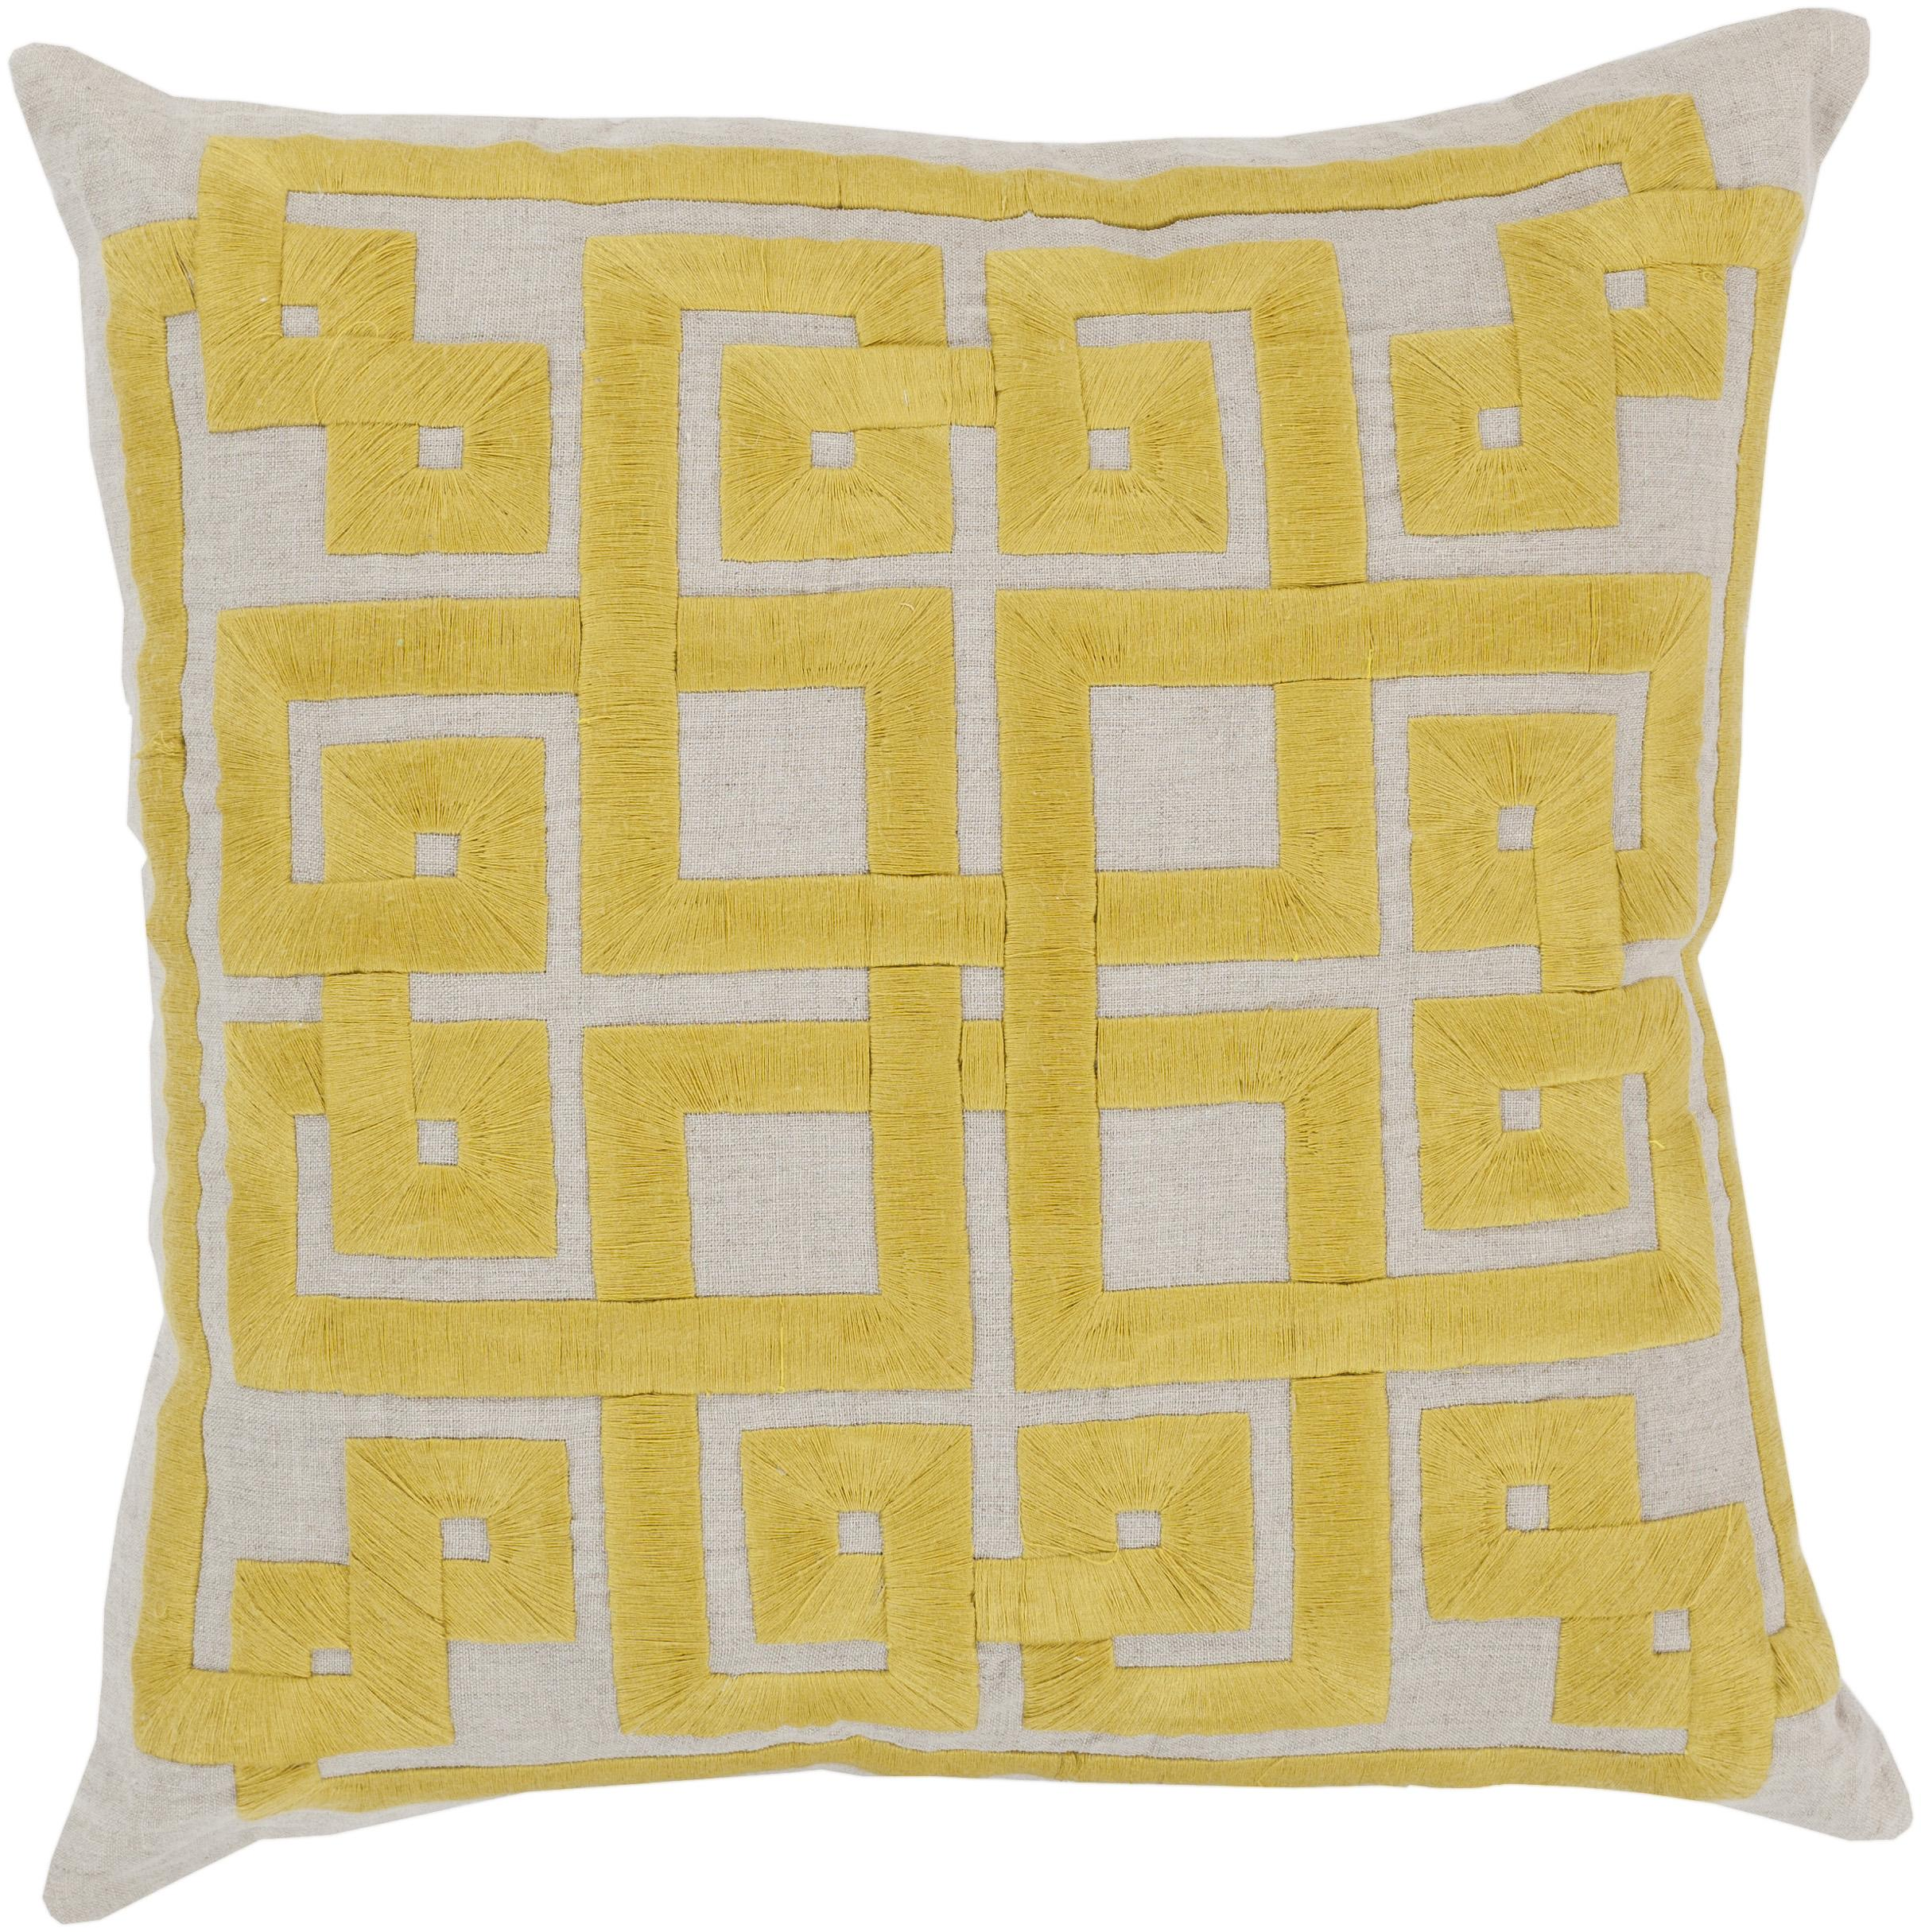 "Surya Pillows 22"" x 22"" Pillow - Item Number: LD005-2222P"